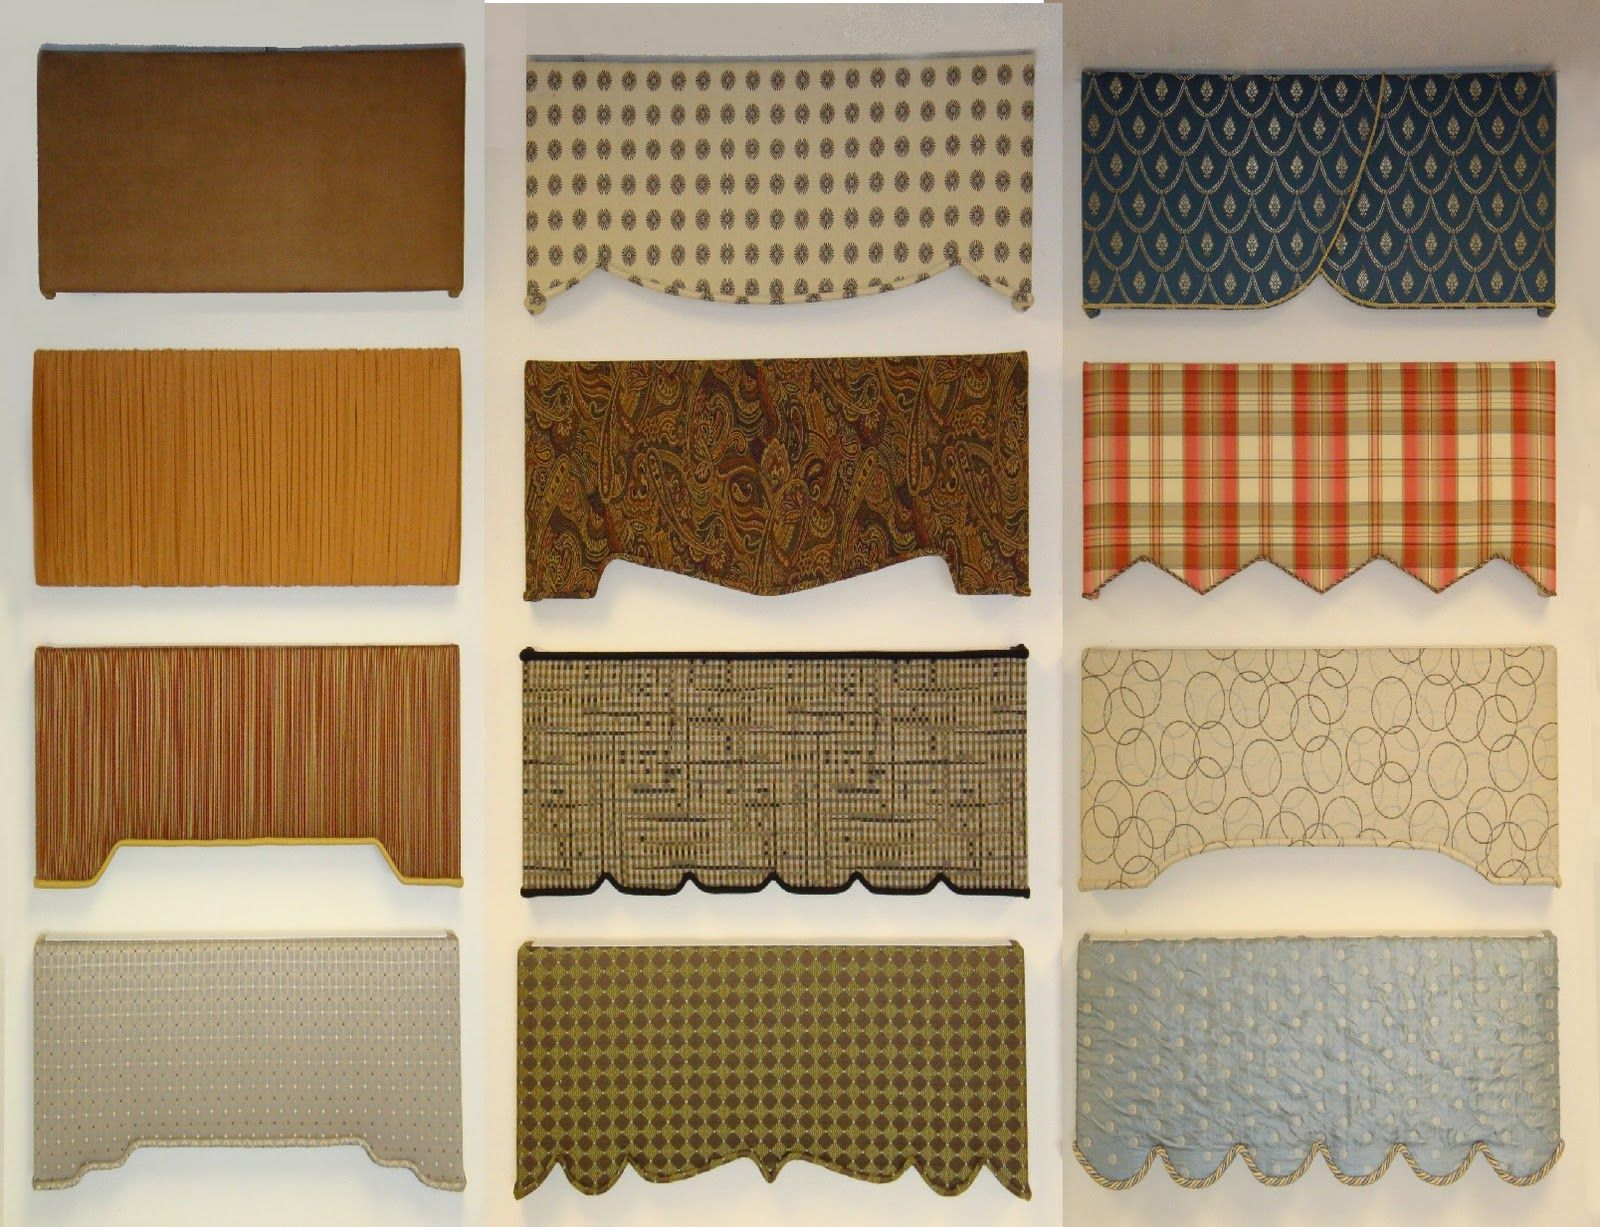 Diy Wood Cornice Upholstered Wood Frame Cornice Boards Are A Beautiful Fairly